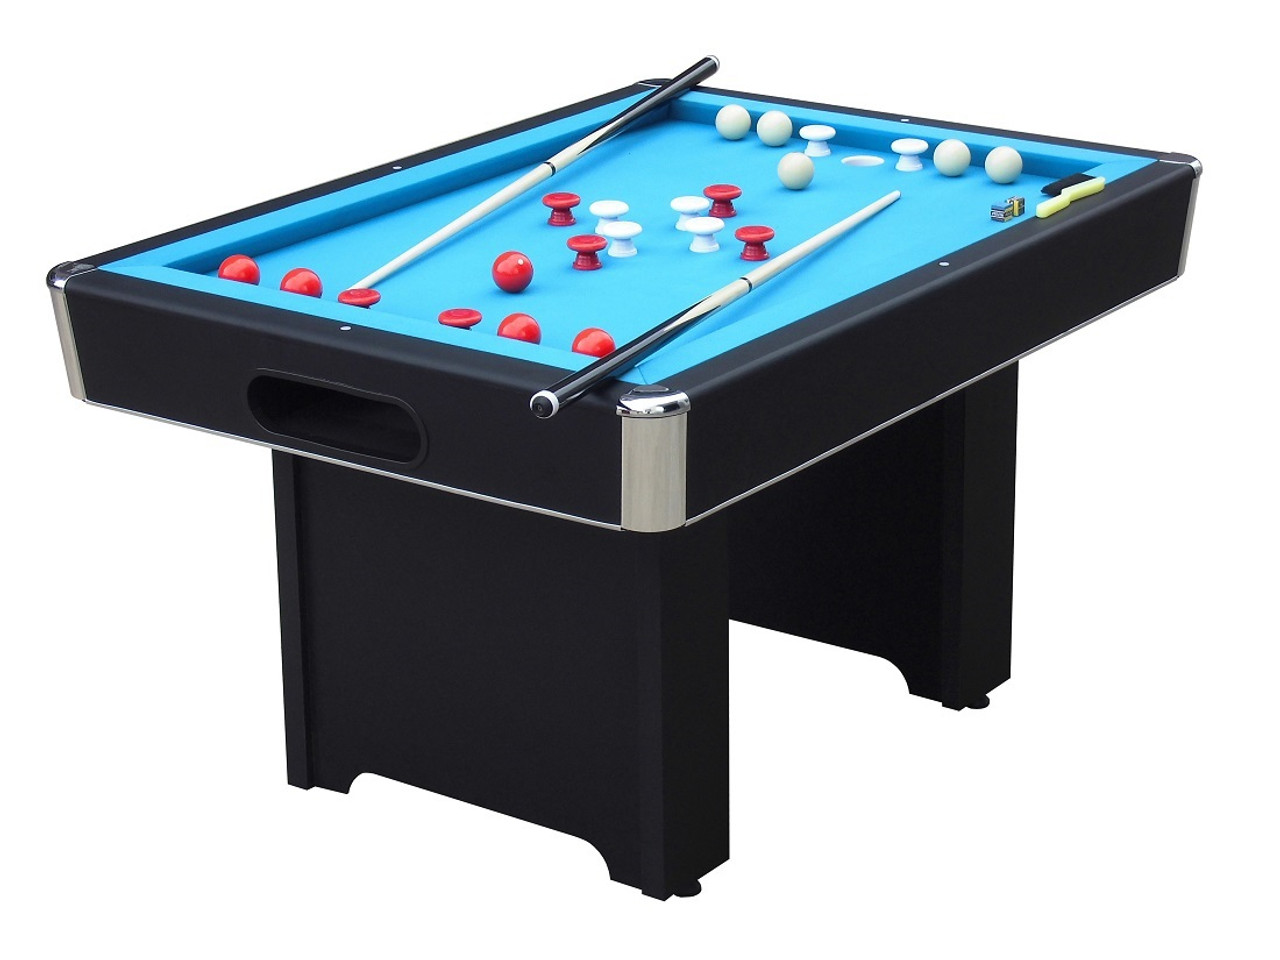 New Hartford bumper pool table - Playcraft PE81